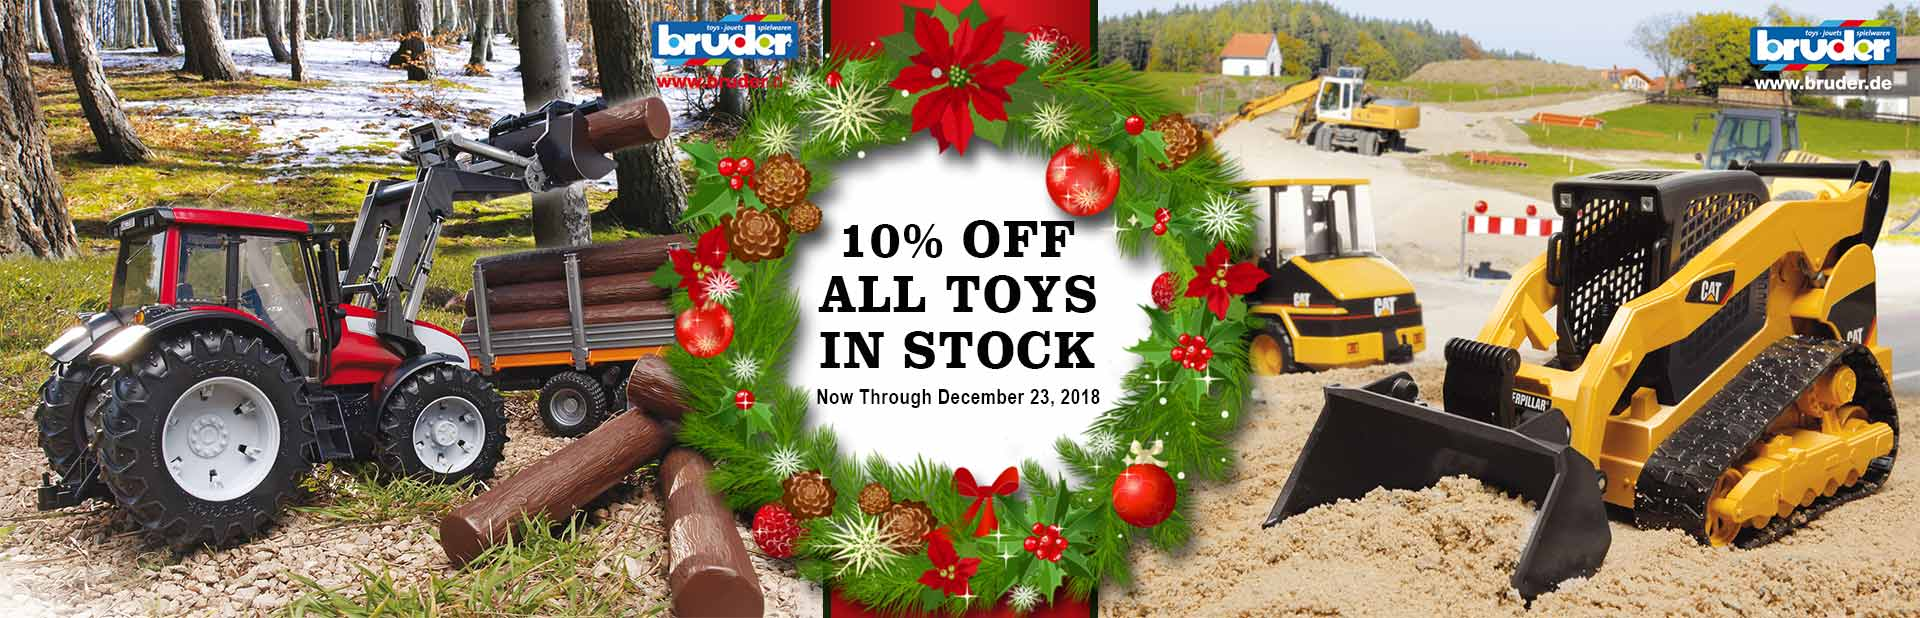 10% Off All Toys In Stock